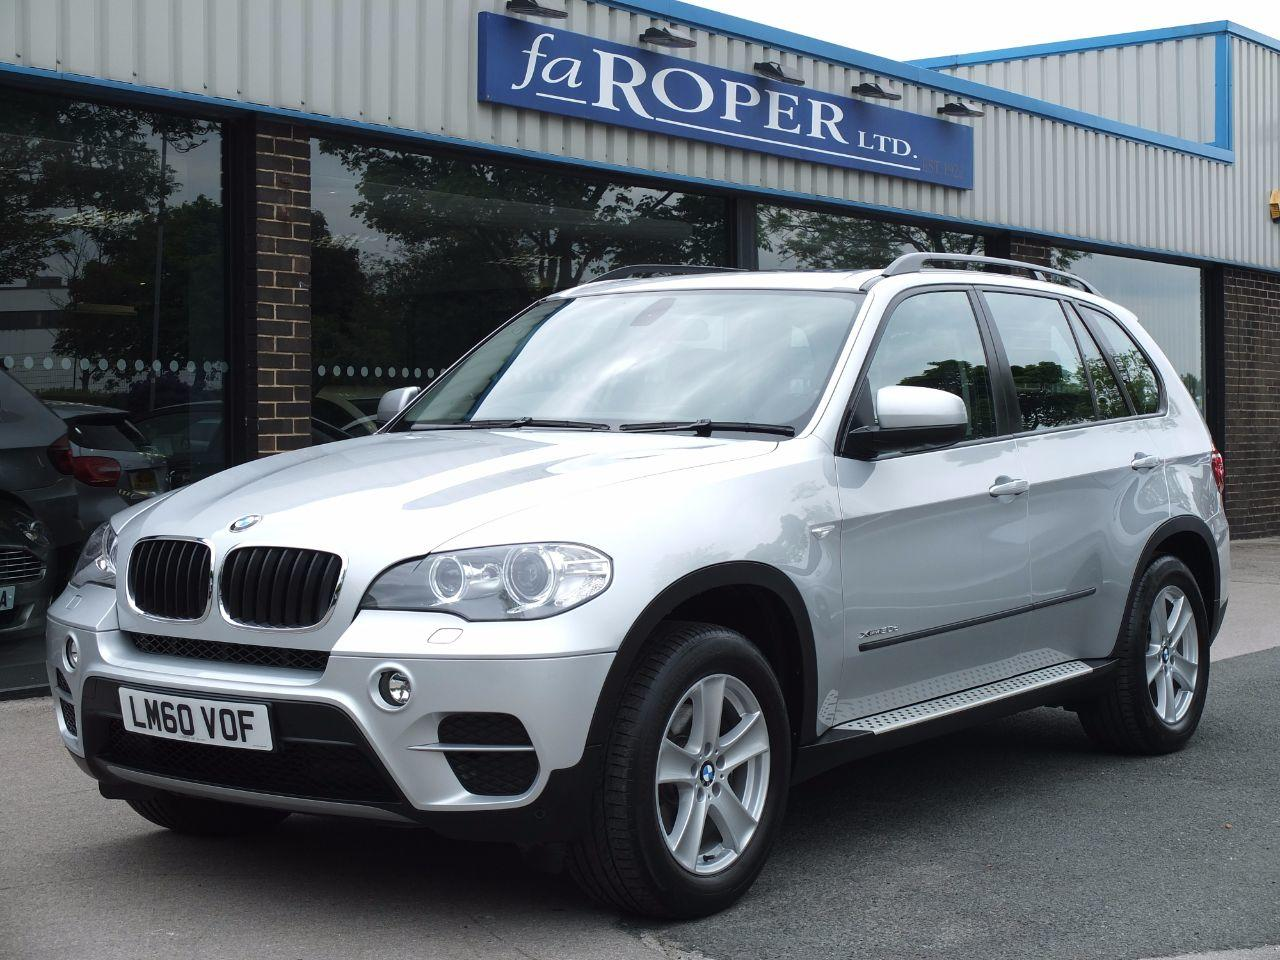 BMW X5 3.0 xDrive30d SE Auto Facelift, Pan Roof, Media Estate Diesel Titanium Silver MetallicBMW X5 3.0 xDrive30d SE Auto Facelift, Pan Roof, Media Estate Diesel Titanium Silver Metallic at fa Roper Ltd Bradford